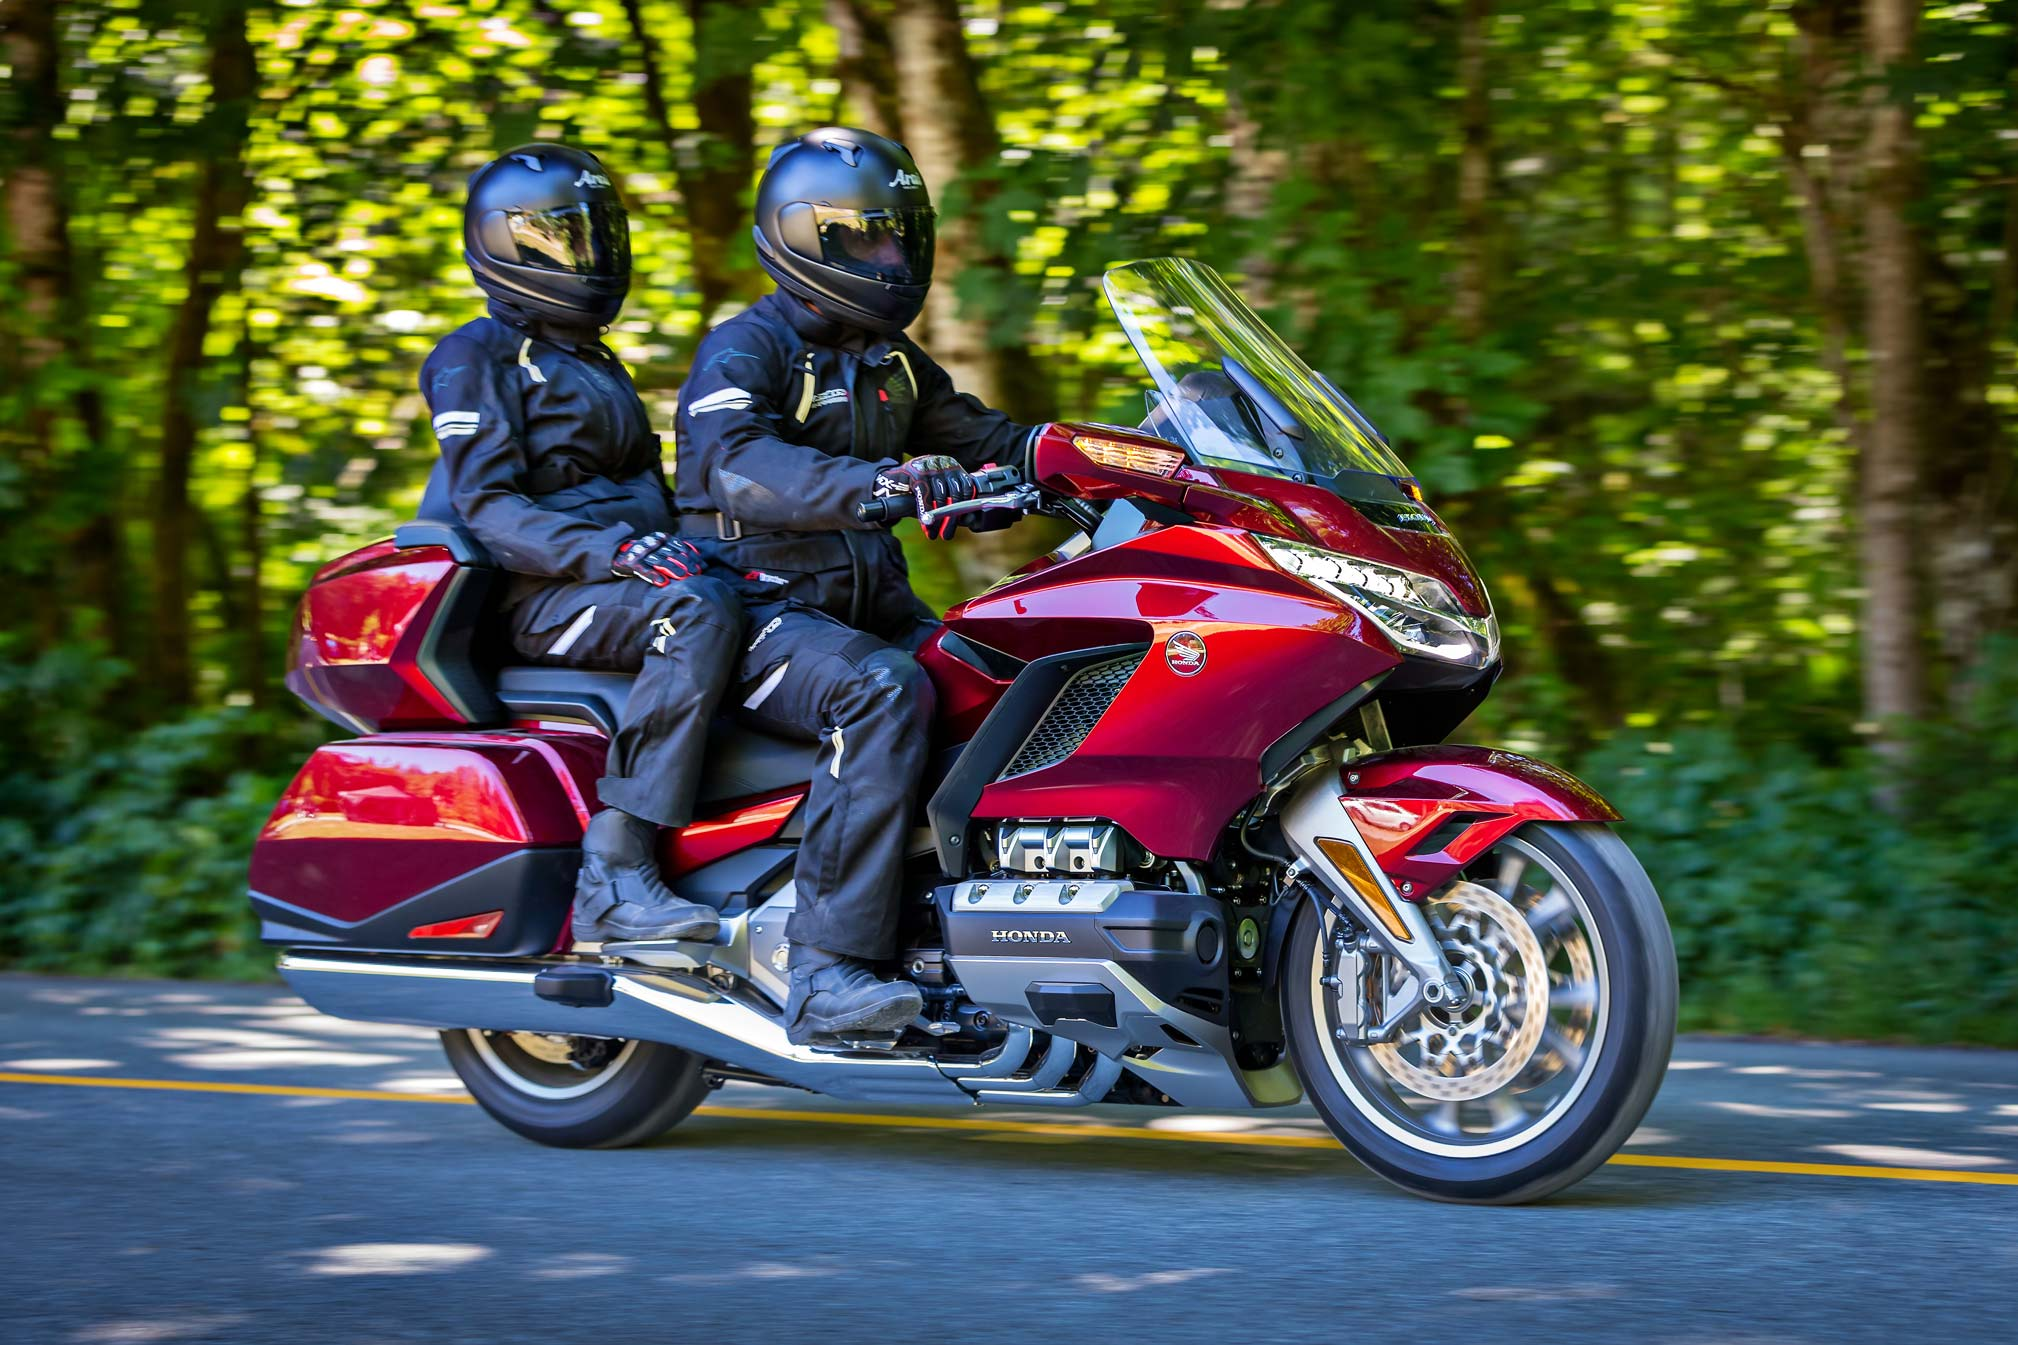 2018-Honda-Gold-Wing-Tour-Automatic-DCT4